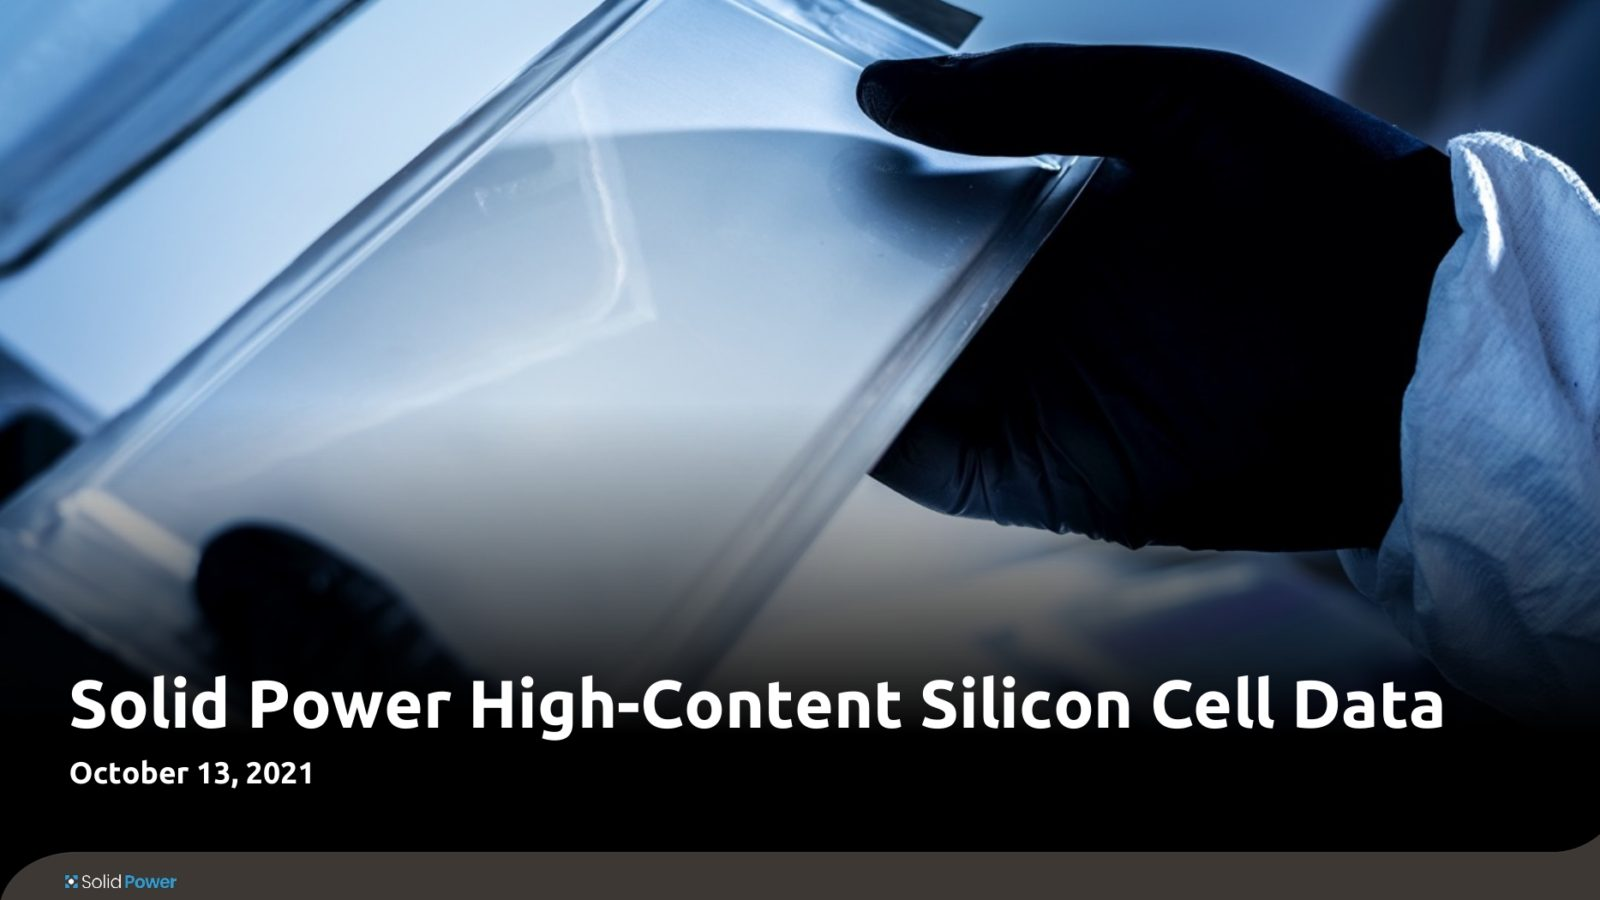 solid-power-puts-solid-state-cells-to-independent-tests-with-promising-results